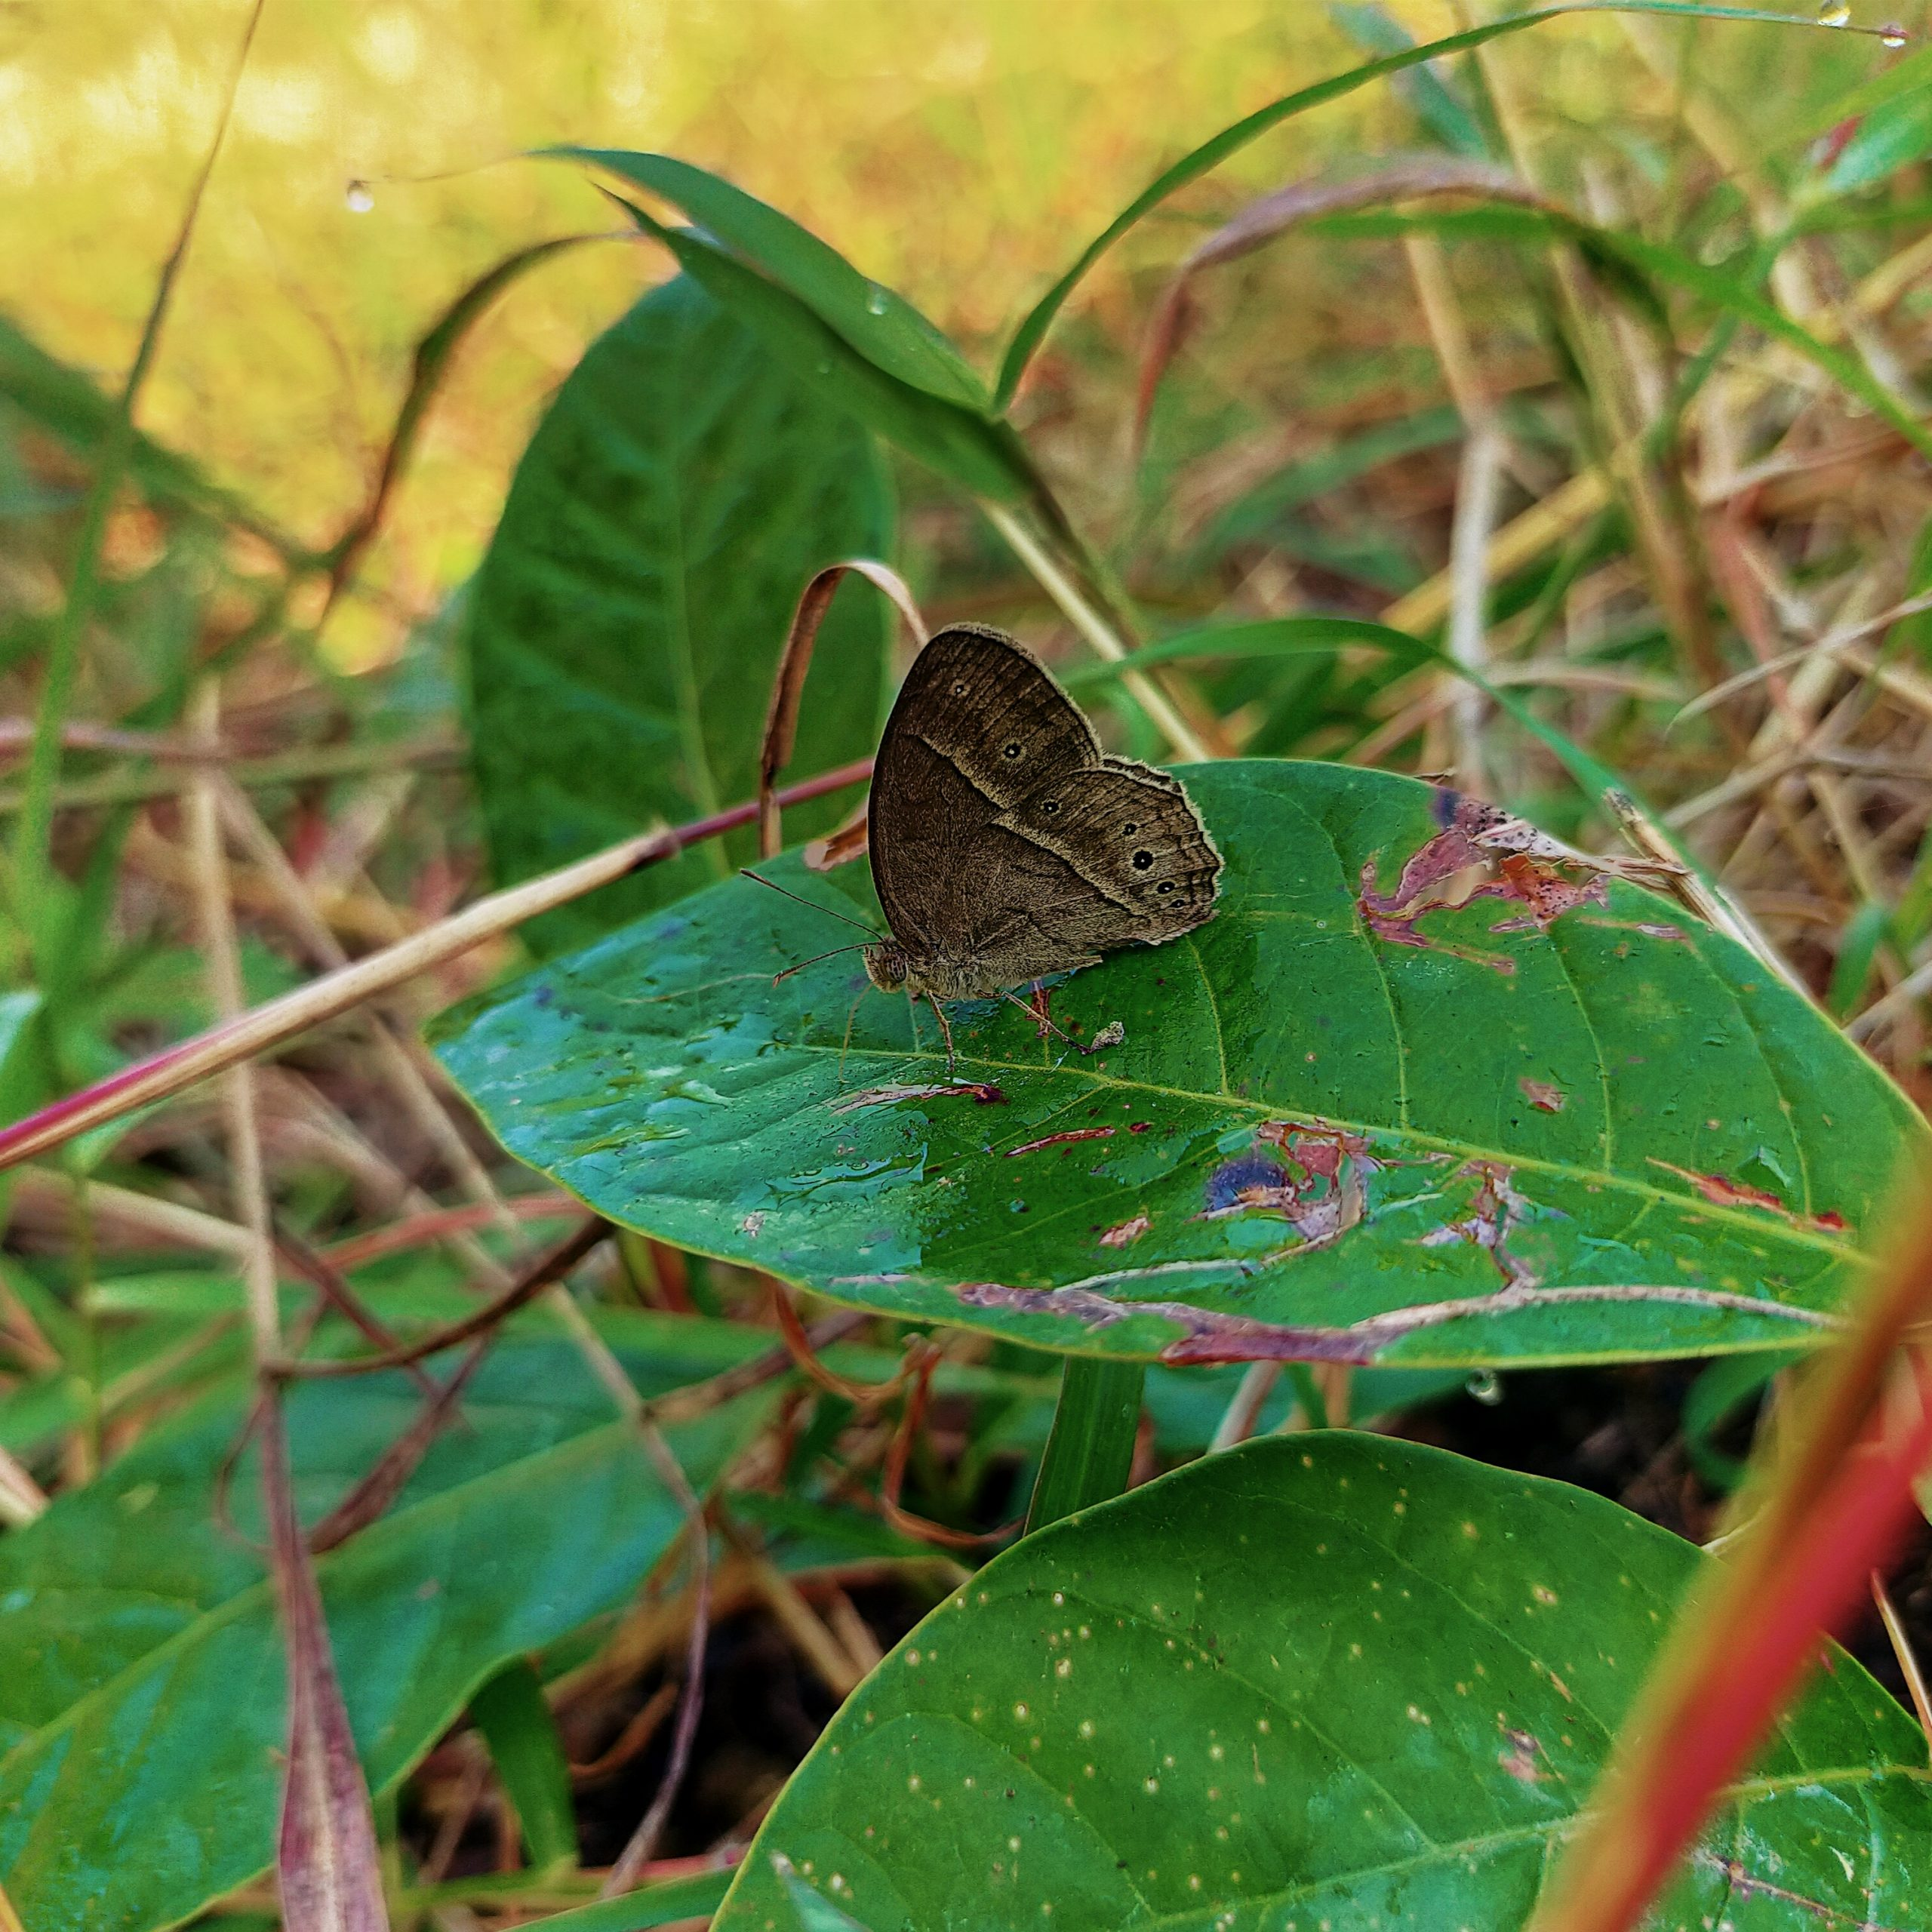 A butterfly sitting on leaf